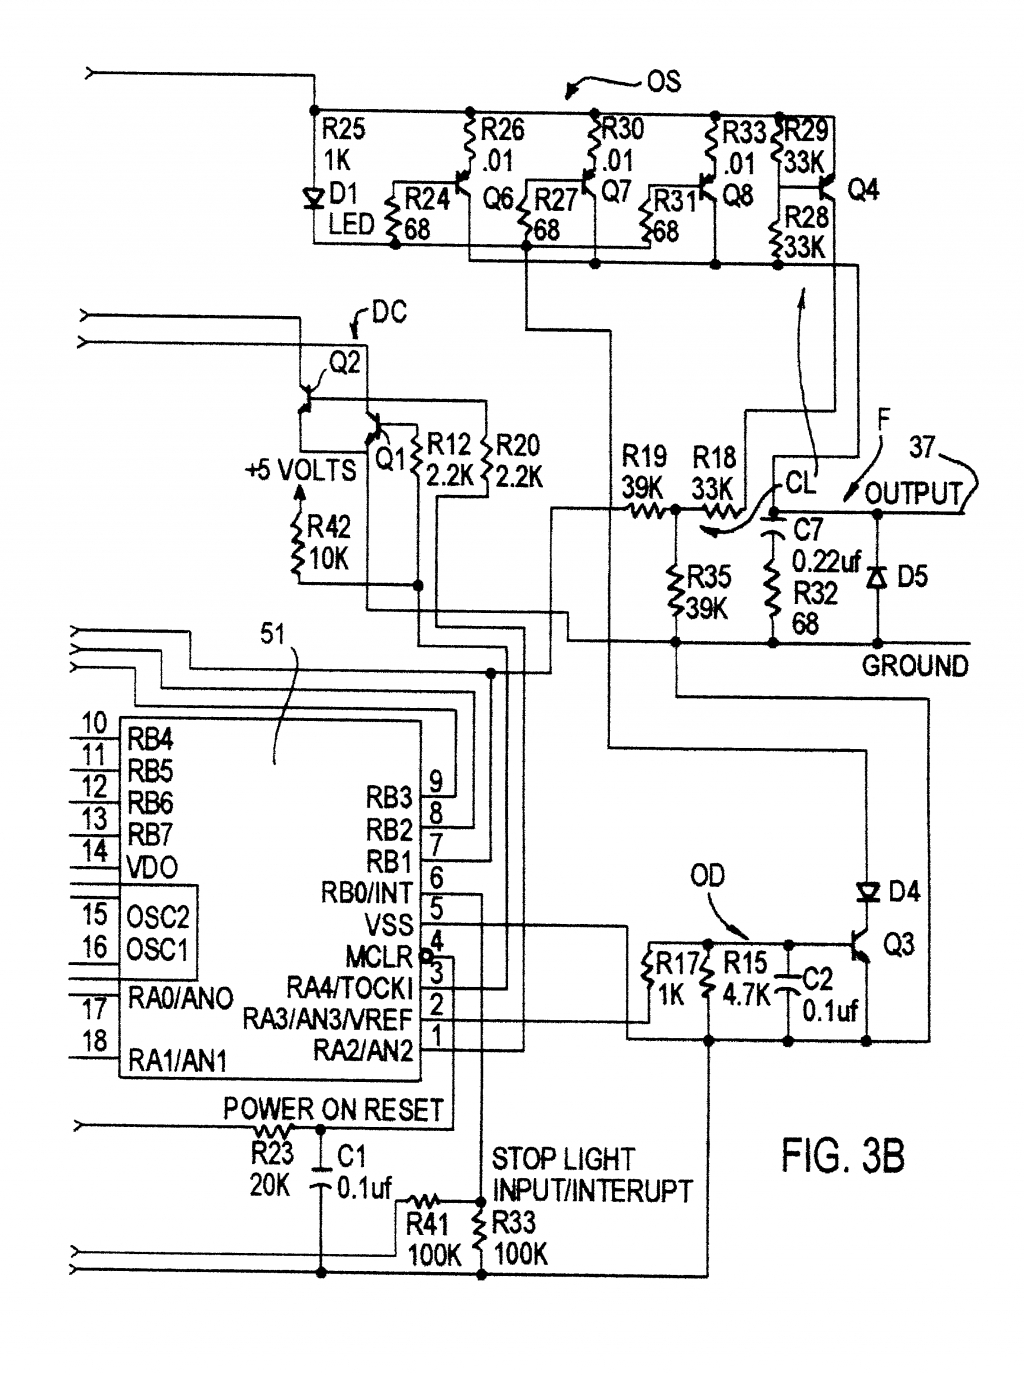 of a computer diagram wiring diagram schematic